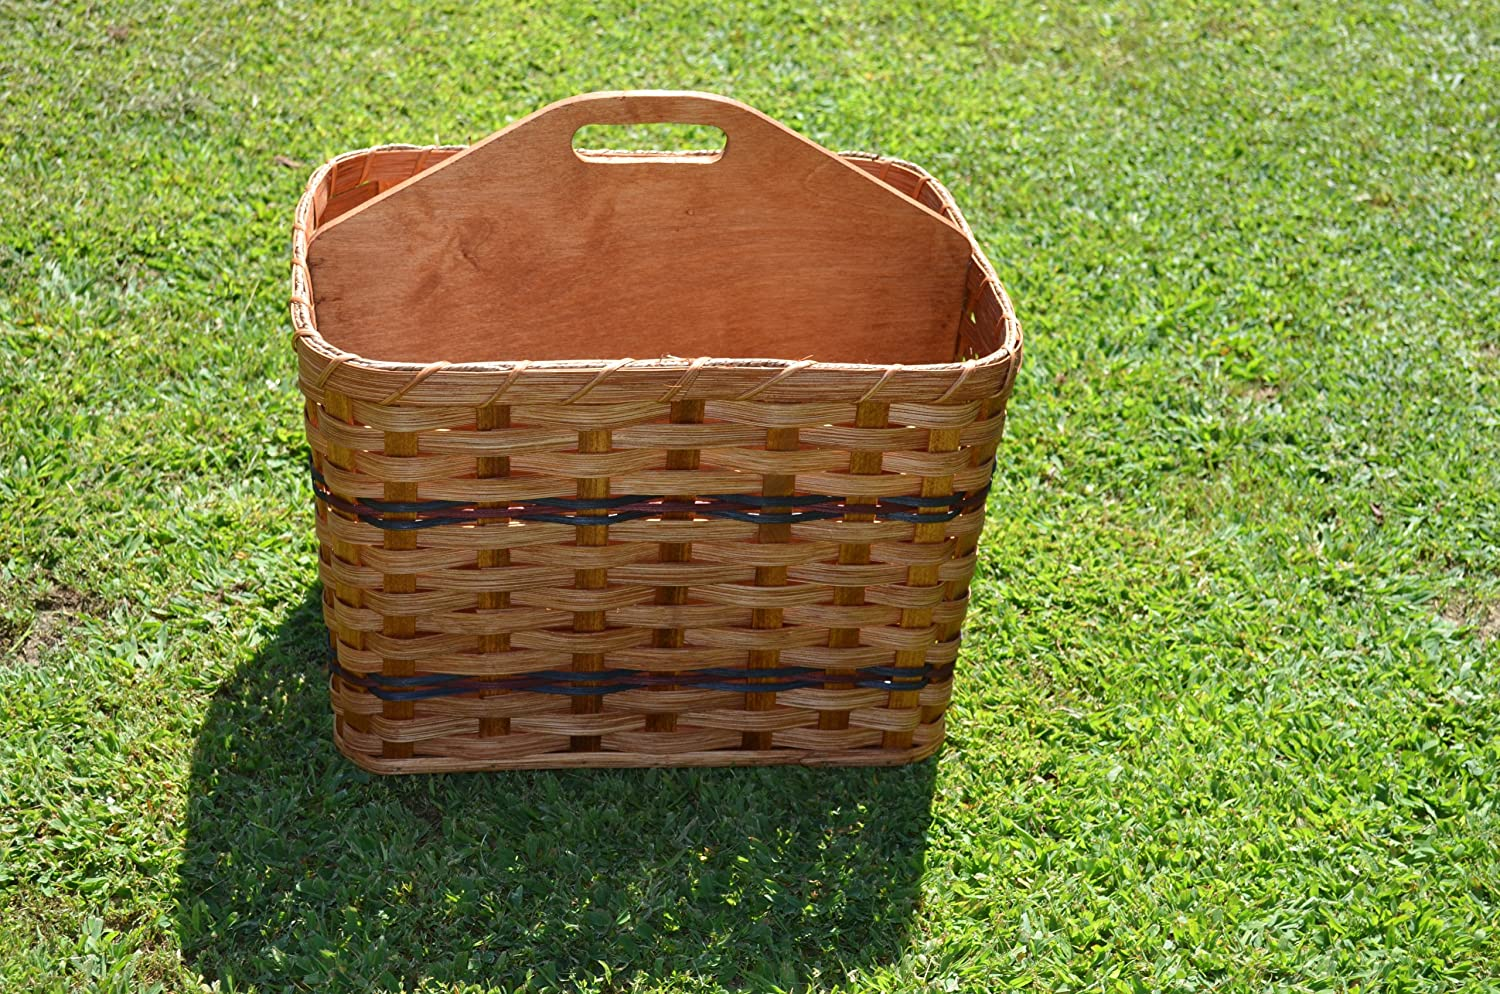 Amish Handmade Magazine Basket with Solid Wood Handled Divider, Will Look Great in Any Office Waiting Area Old order amish TG-HEG-MGH